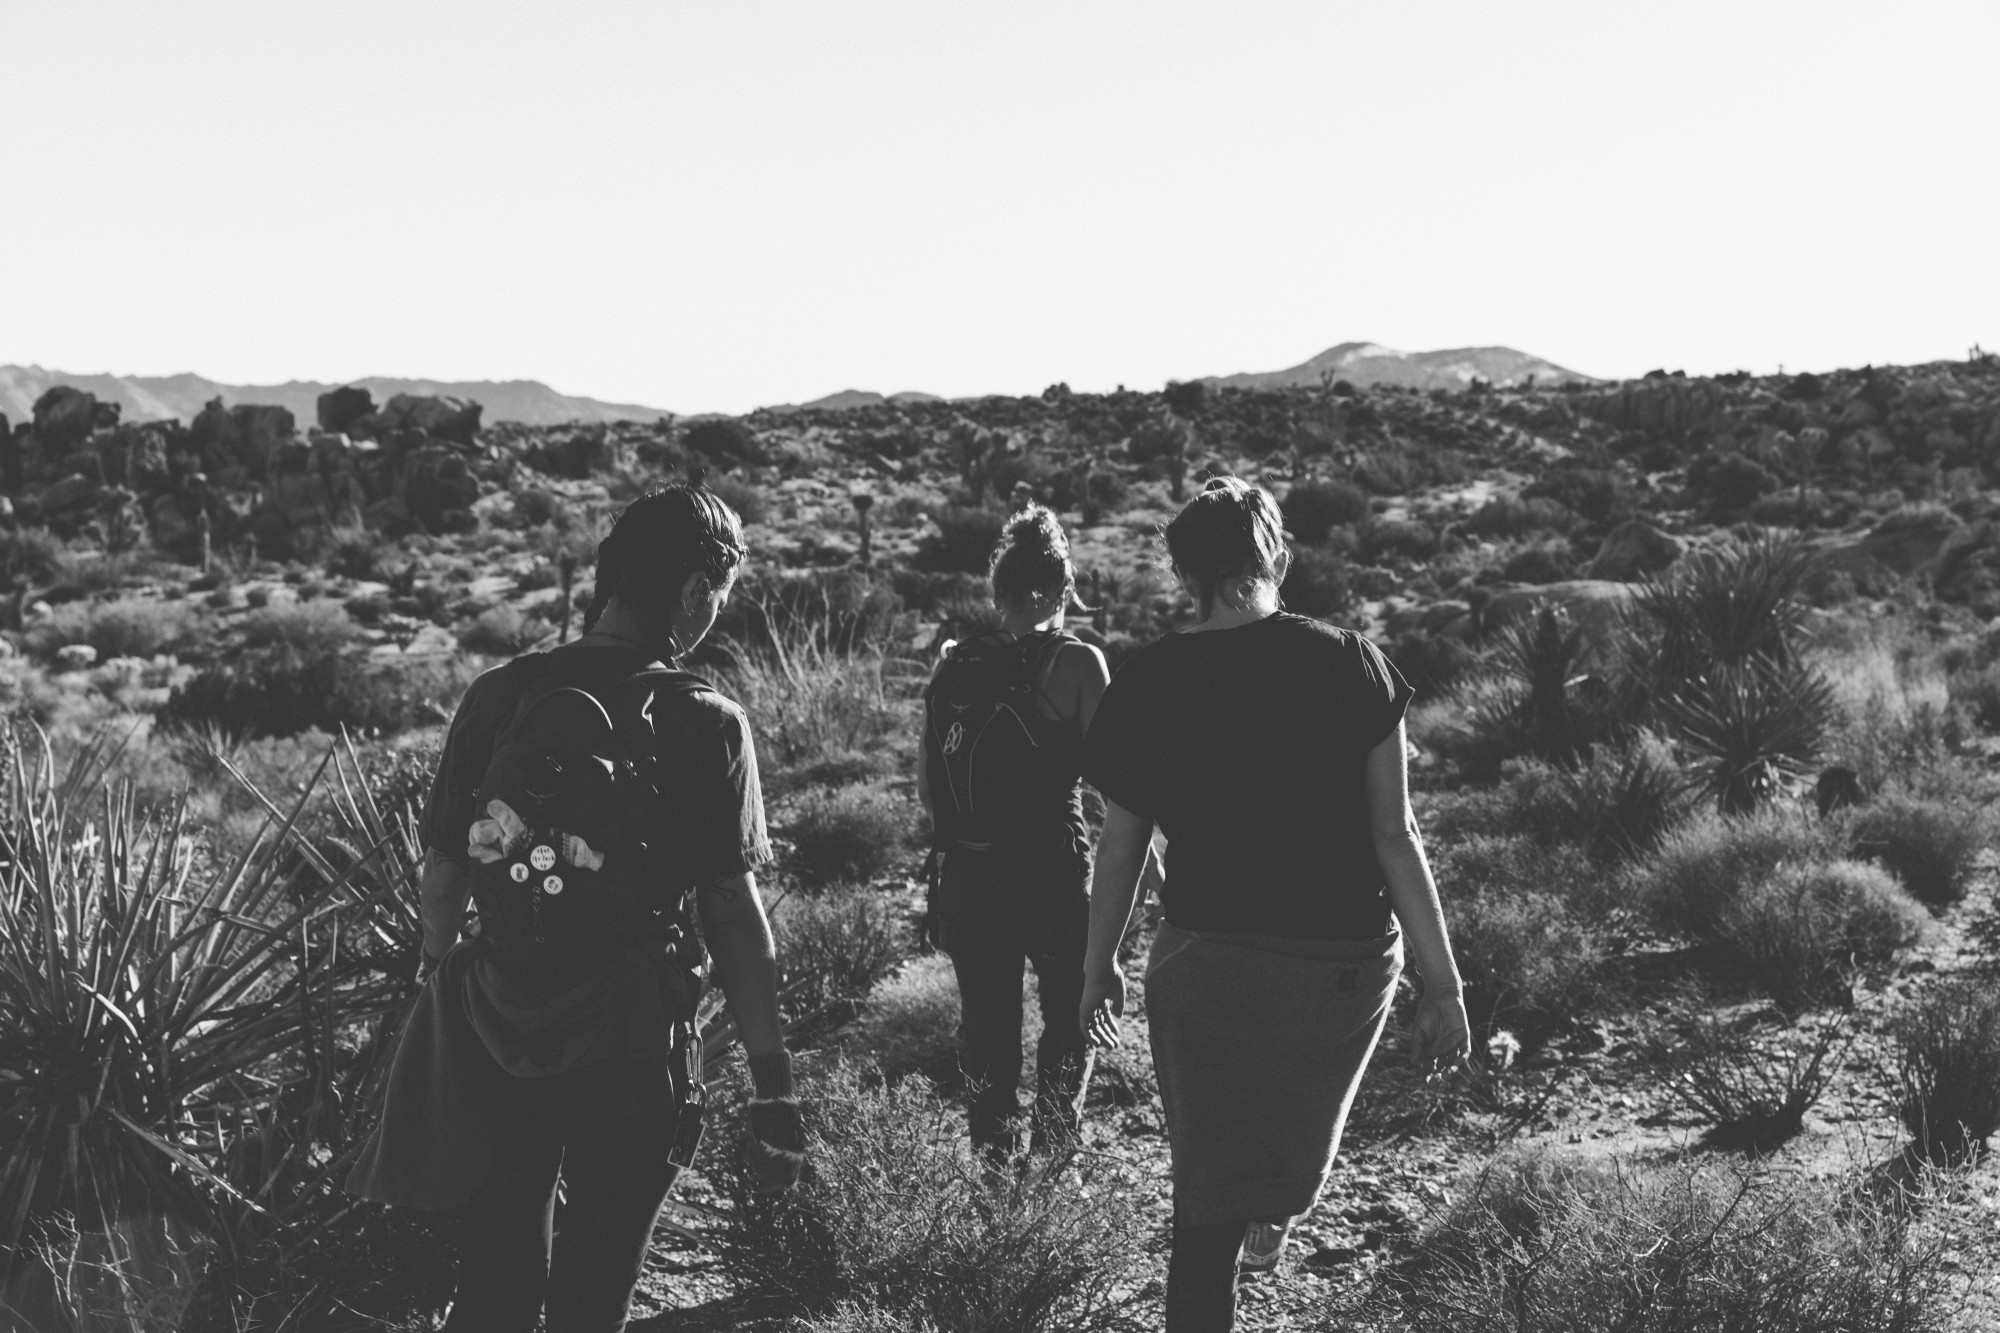 A black and white image of three people walking up an arid hillside.